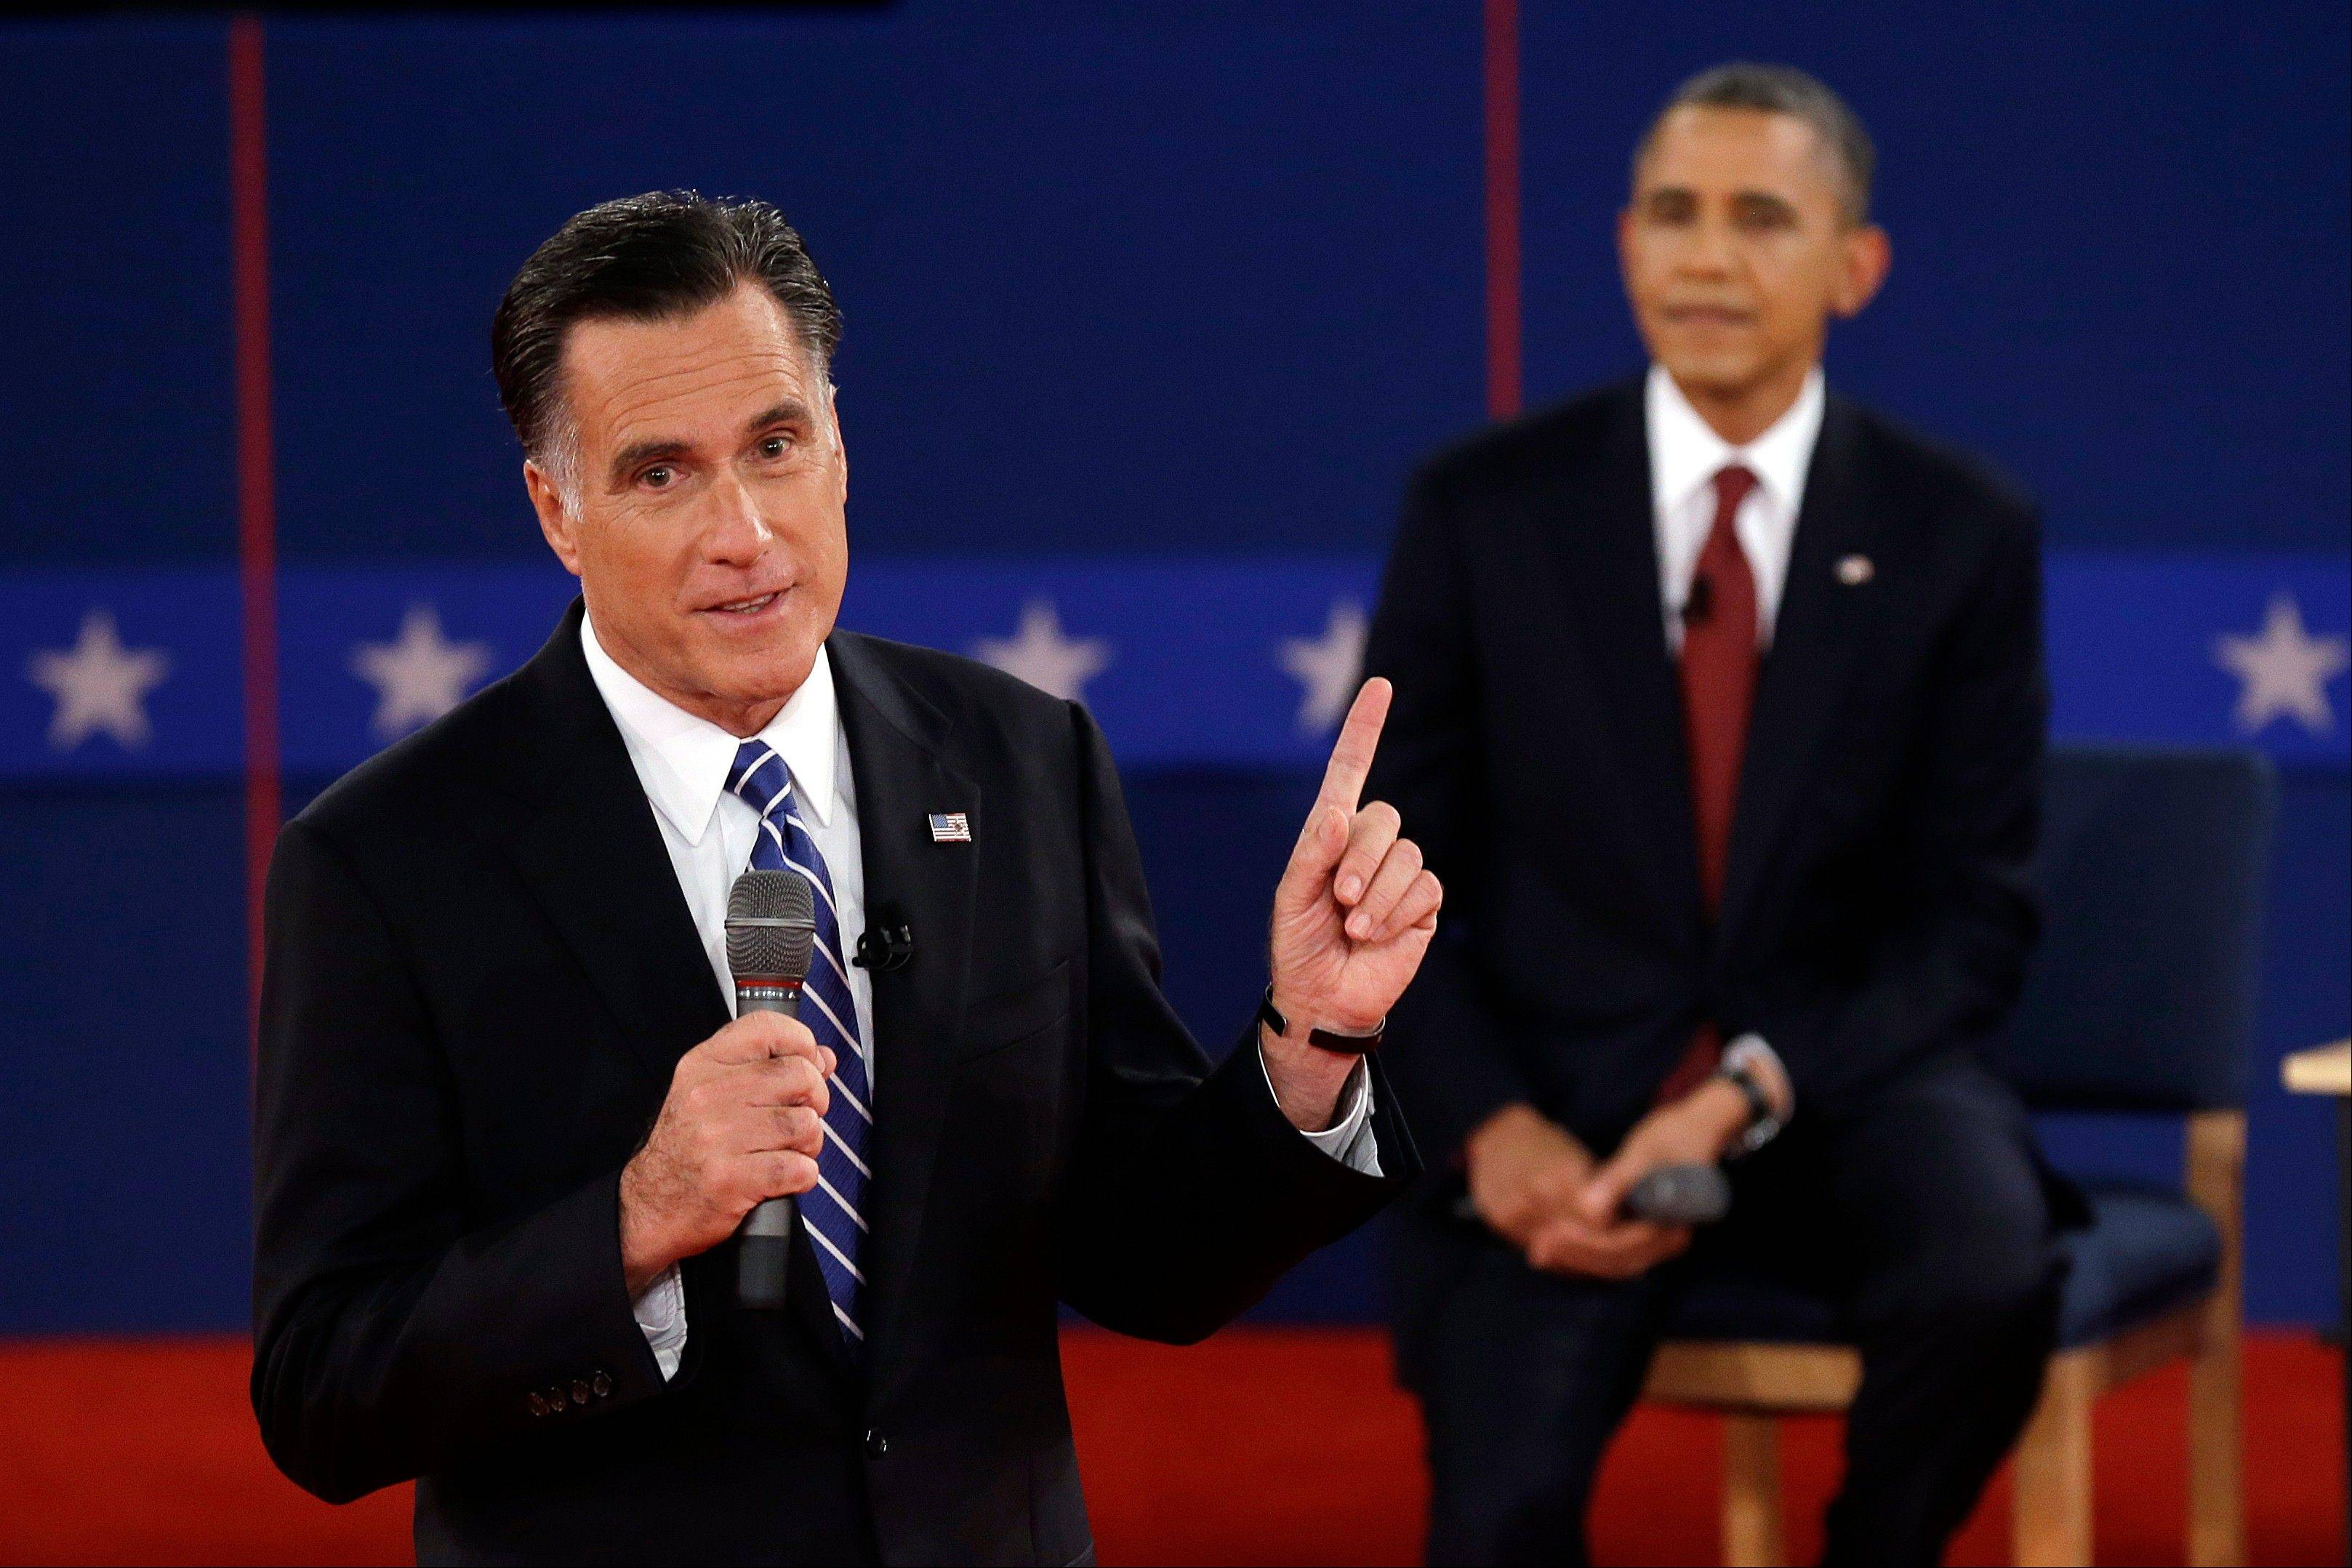 Republican presidential nominee Mitt Romney answers a question as President Barack Obama listens during the second presidential debate at Hofstra University, Tuesday, Oct. 16, 2012, in Hempstead, N.Y.